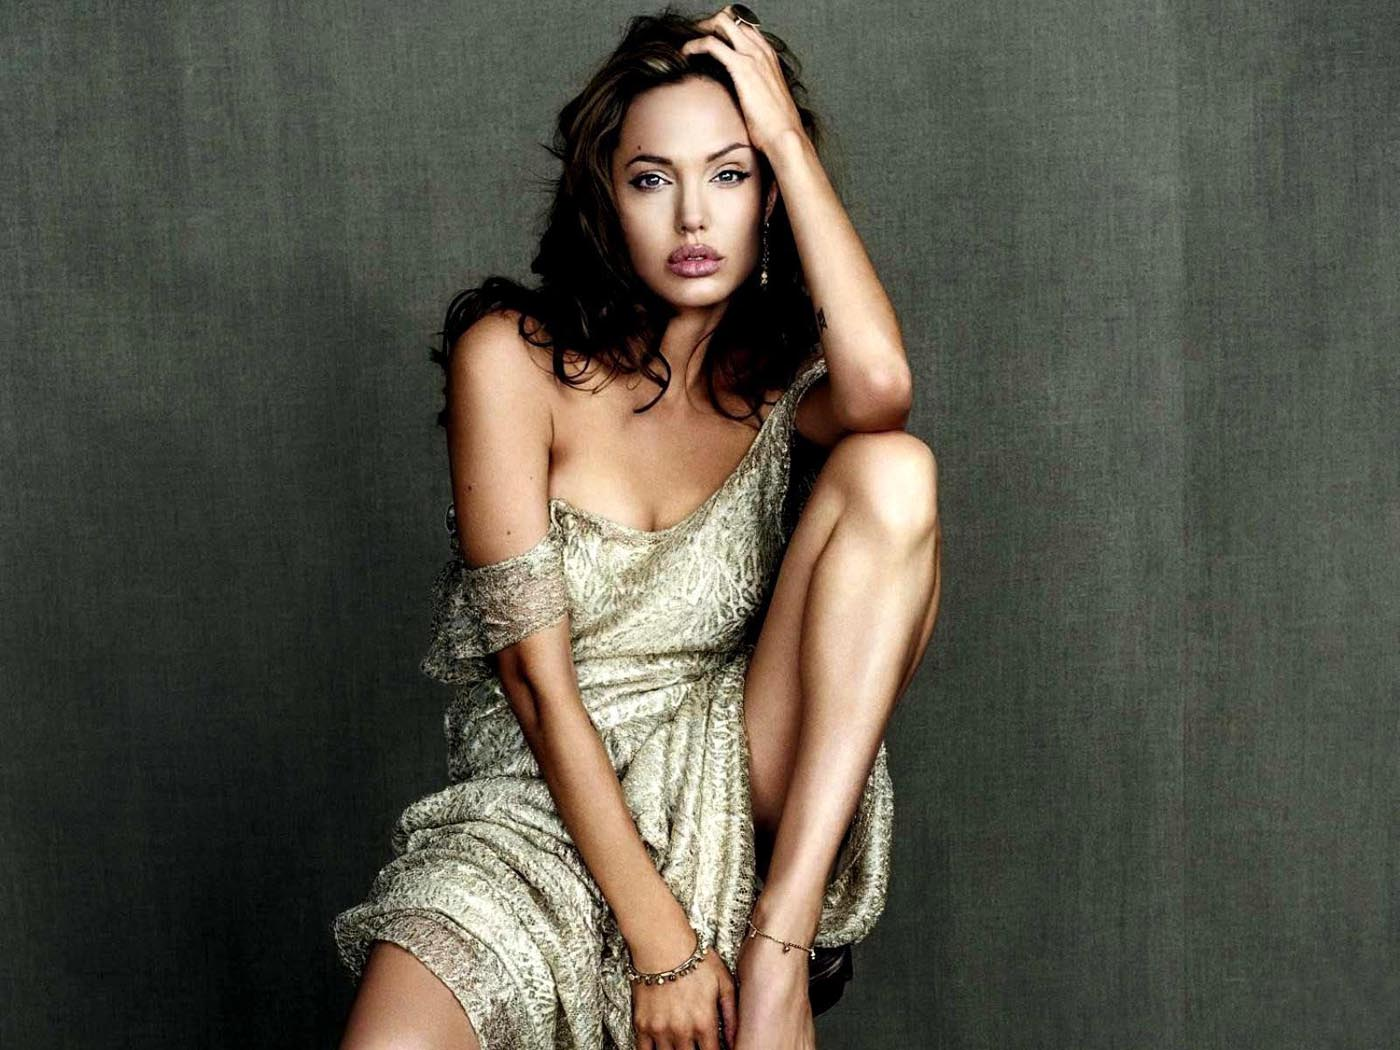 Angelina Jolie Hd Wallpapers: Hollywood Actress: Angelina Jolie's Hd Images